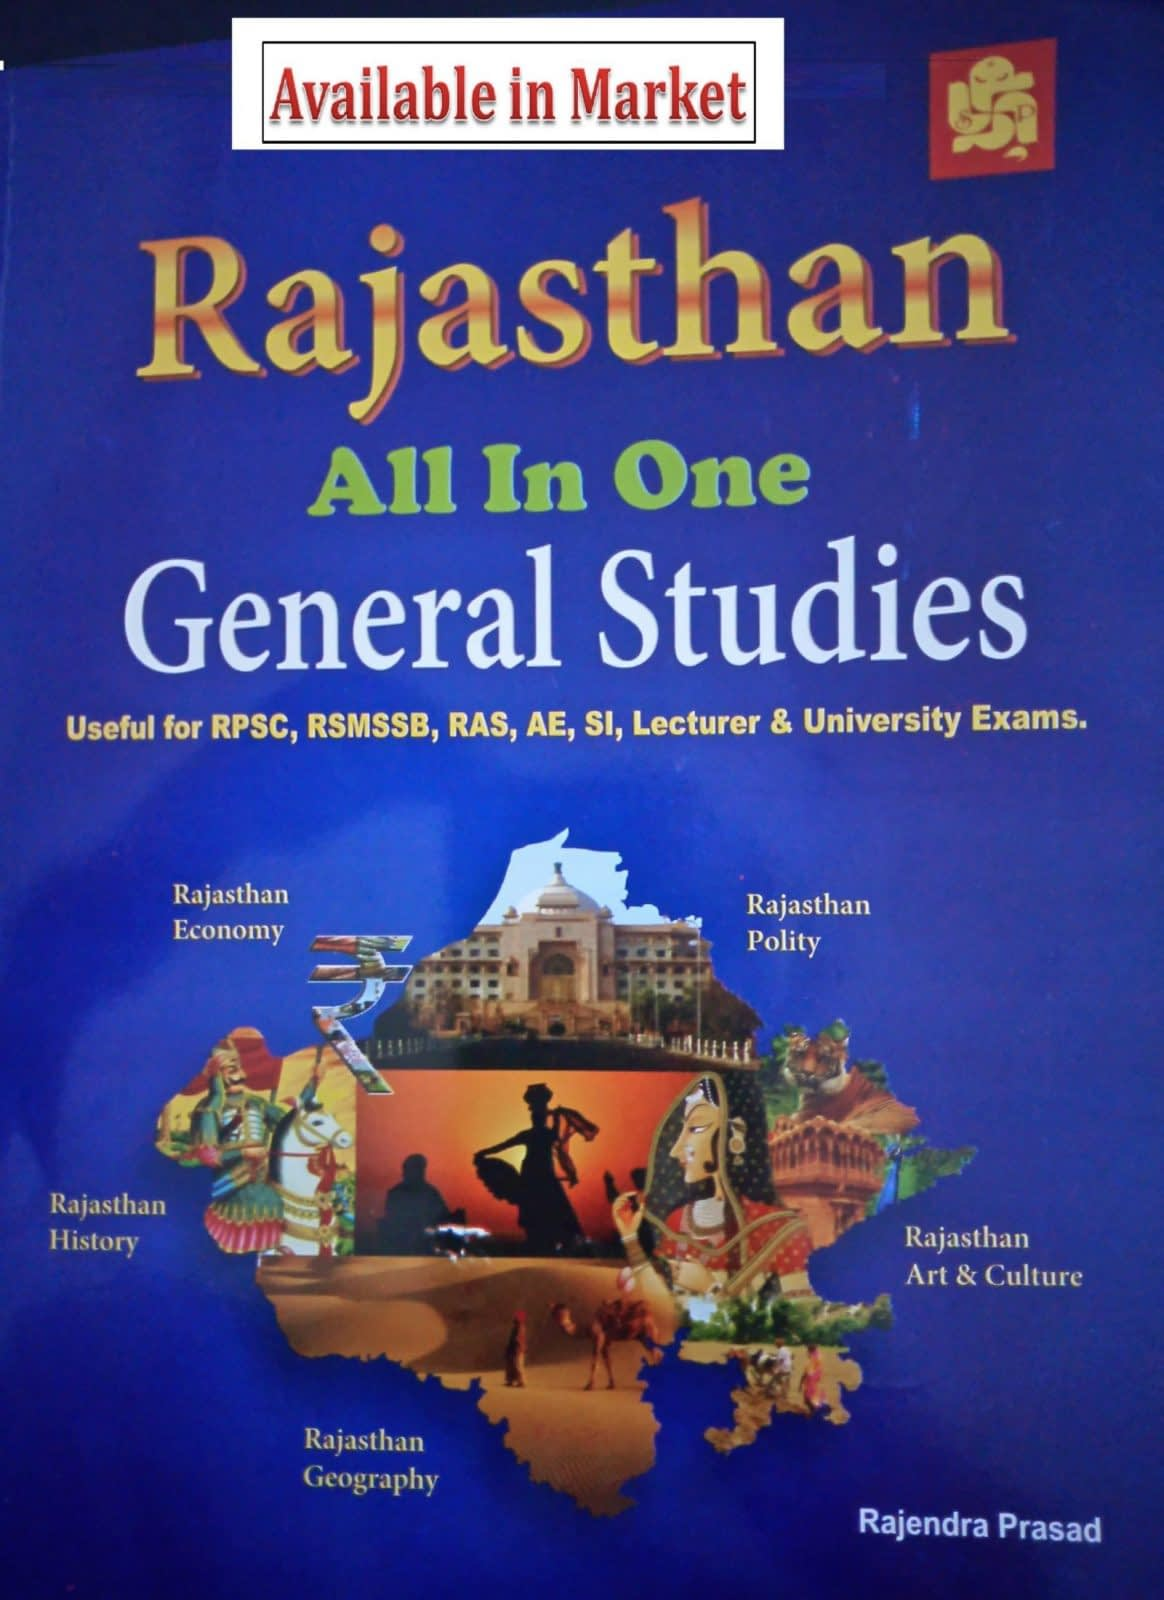 General Studies of Rajasthan: RPSC RAS RSMSSB and Other Competitive Exams